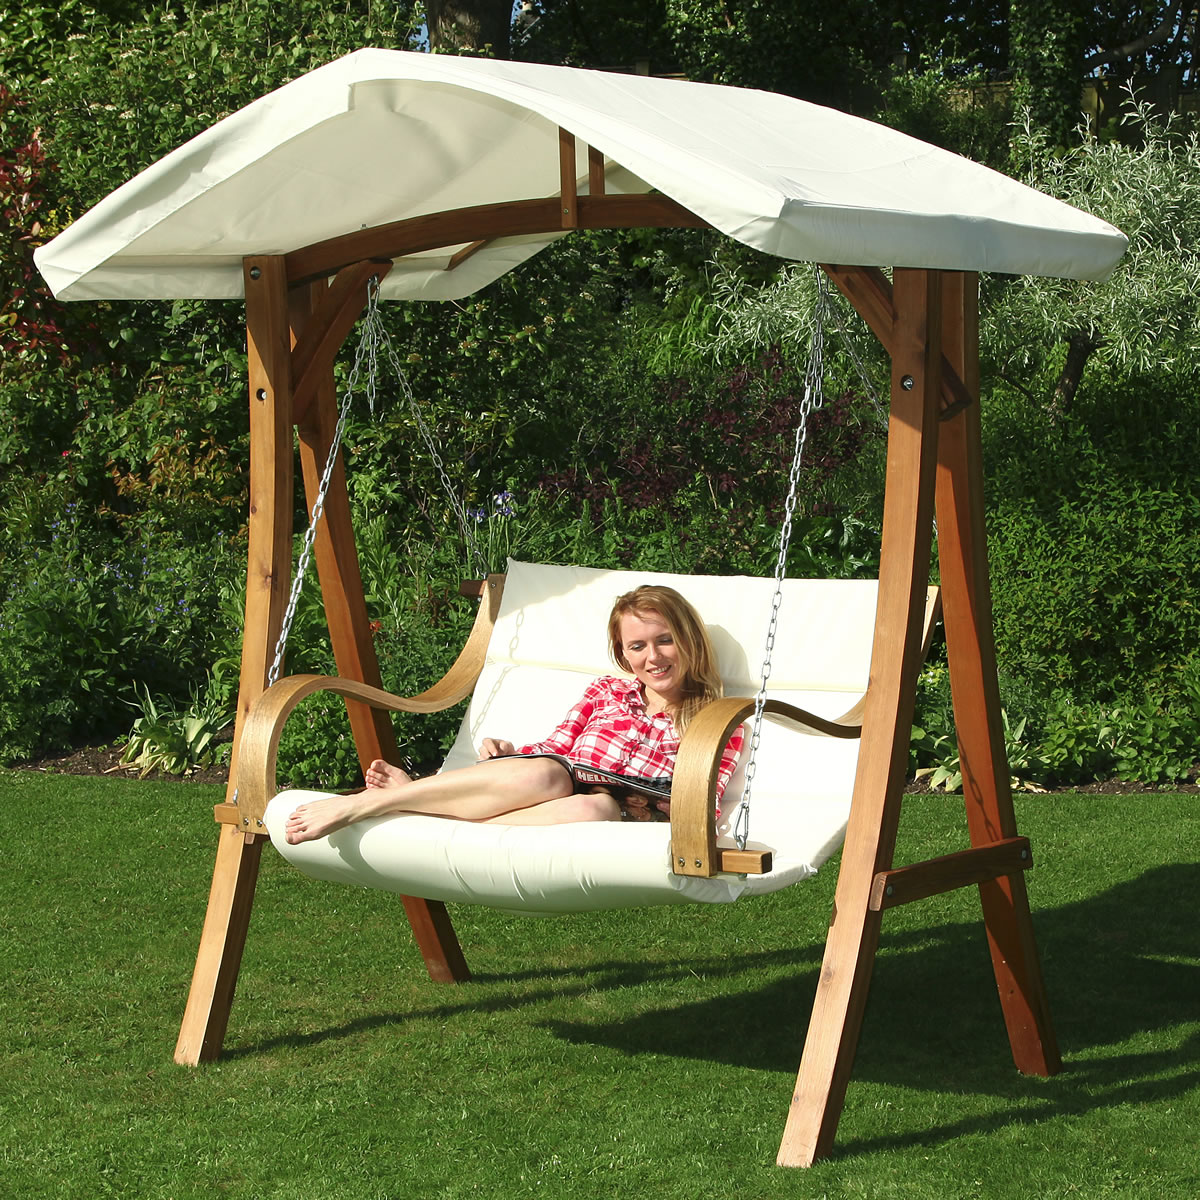 seater garden swing chair with canopy hl 6302 3 pictures